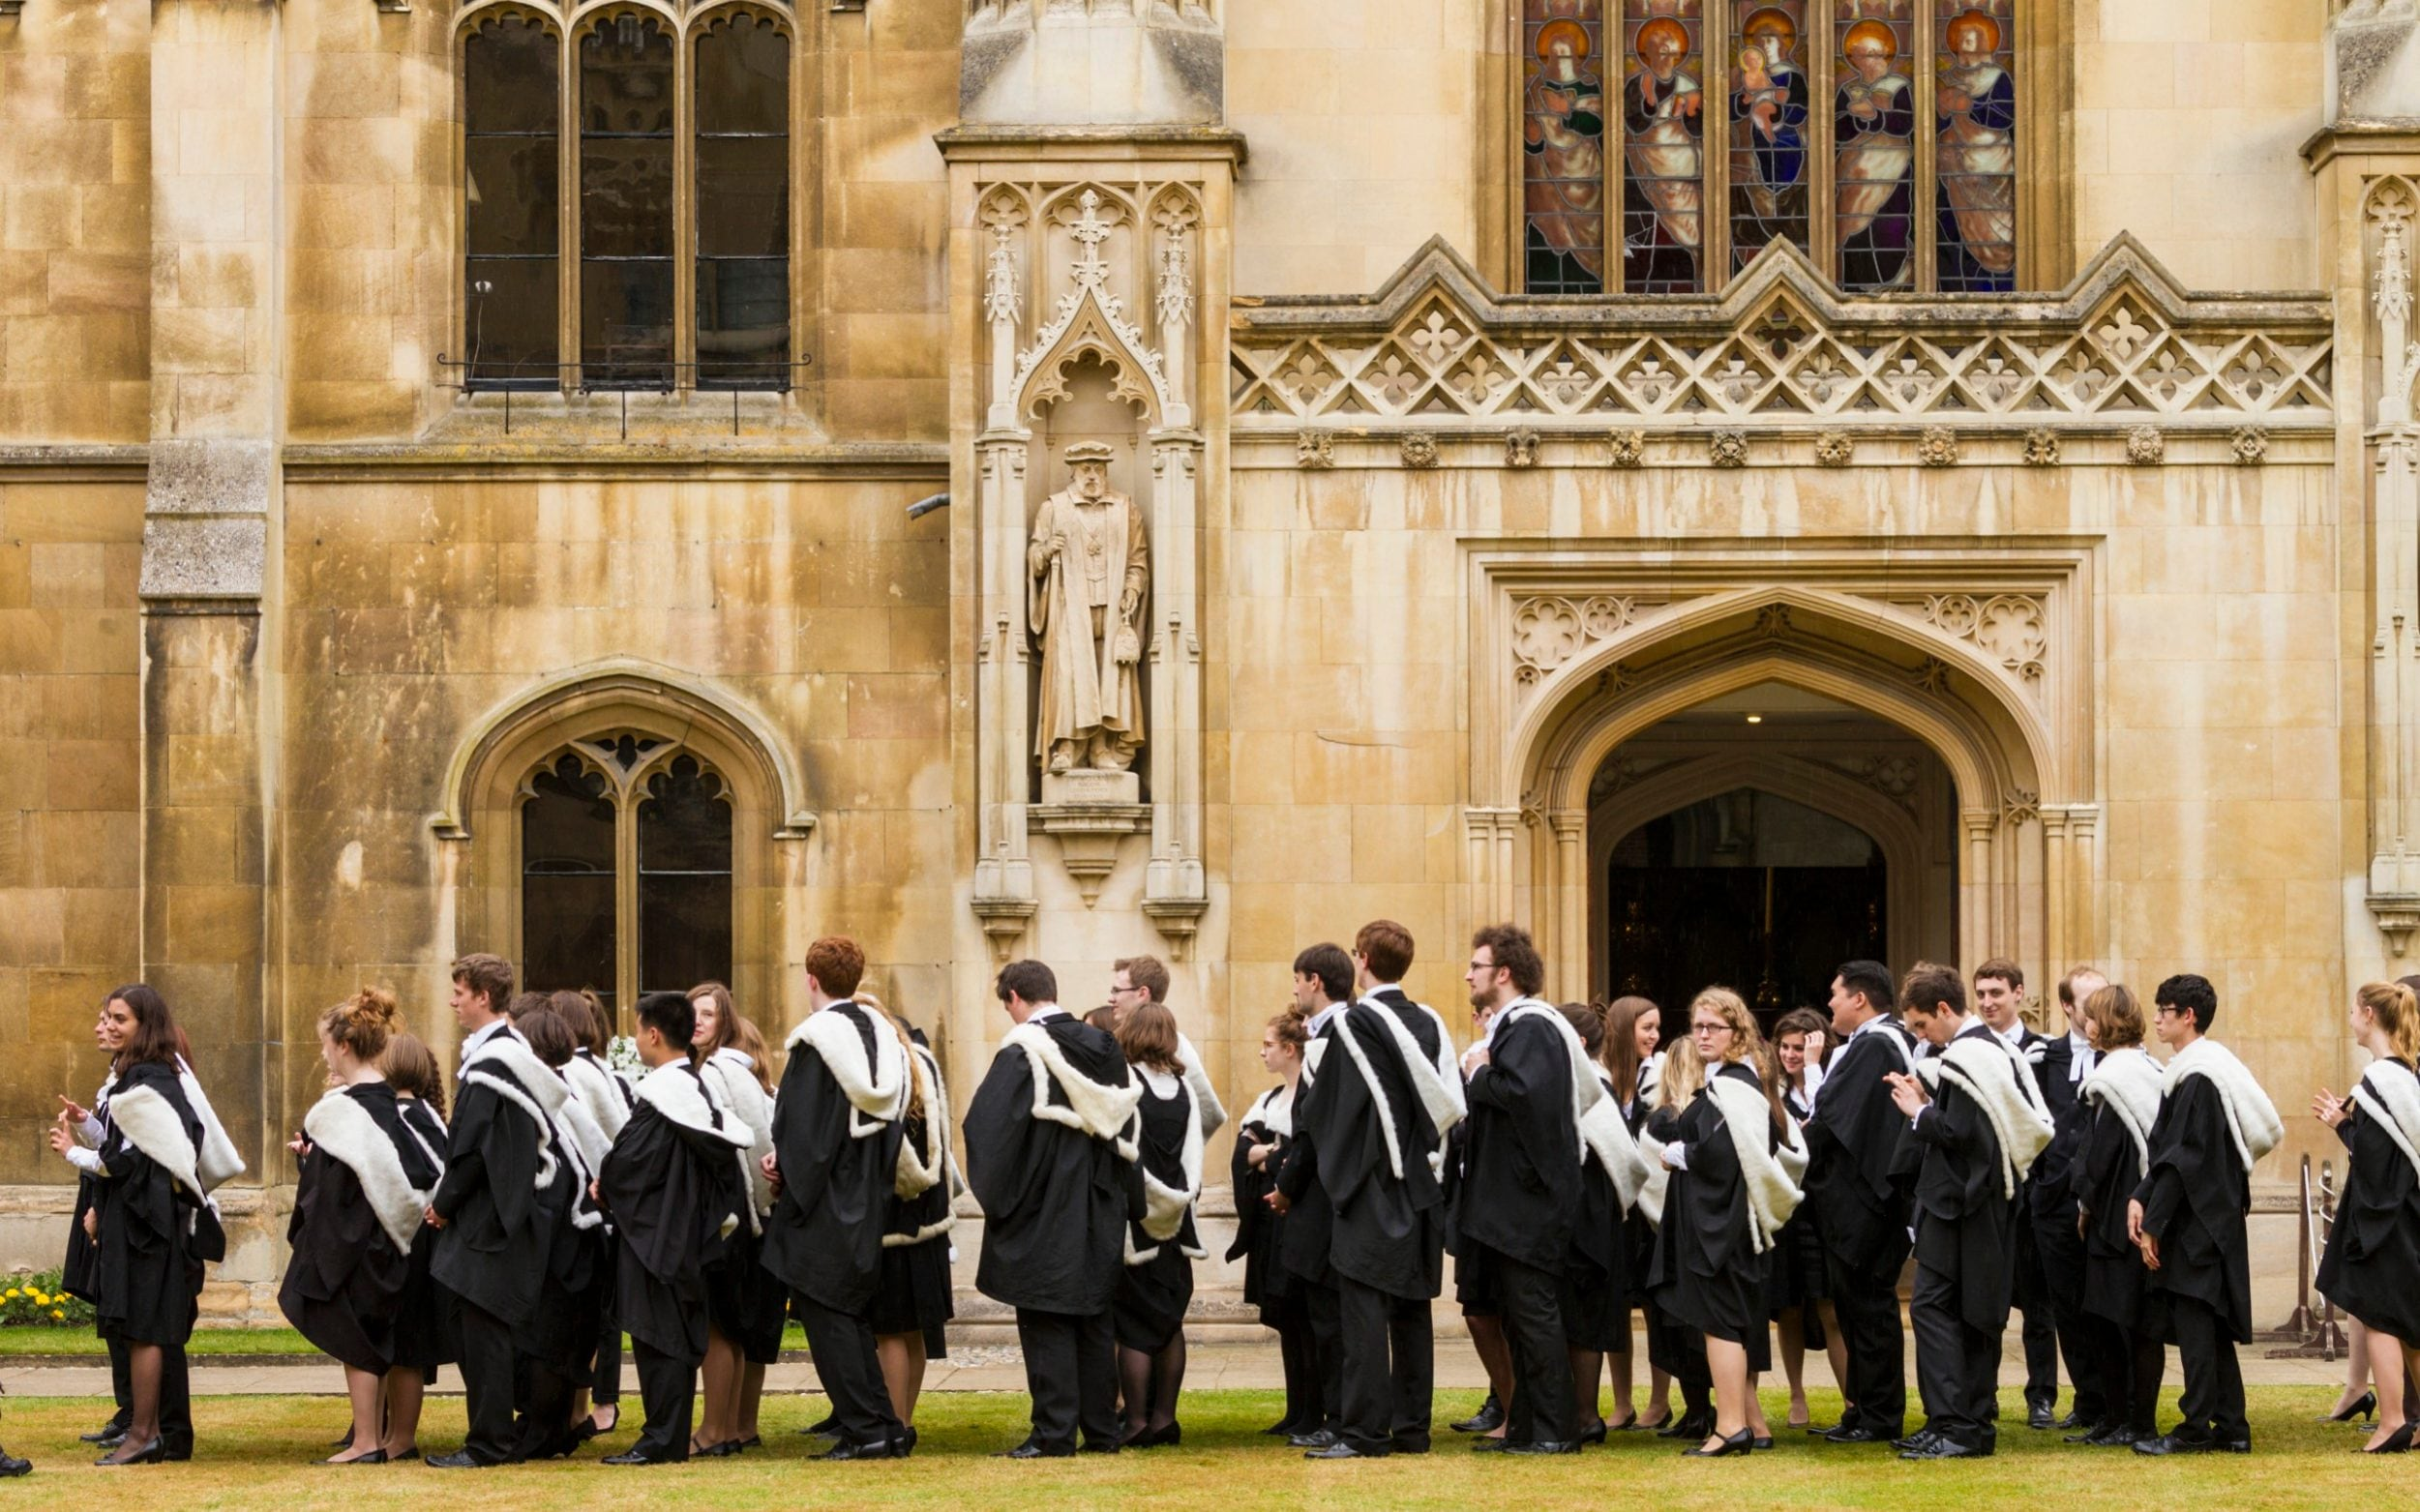 Cambridge and Peking Universities to launch partnership amid concern over Chinese influence